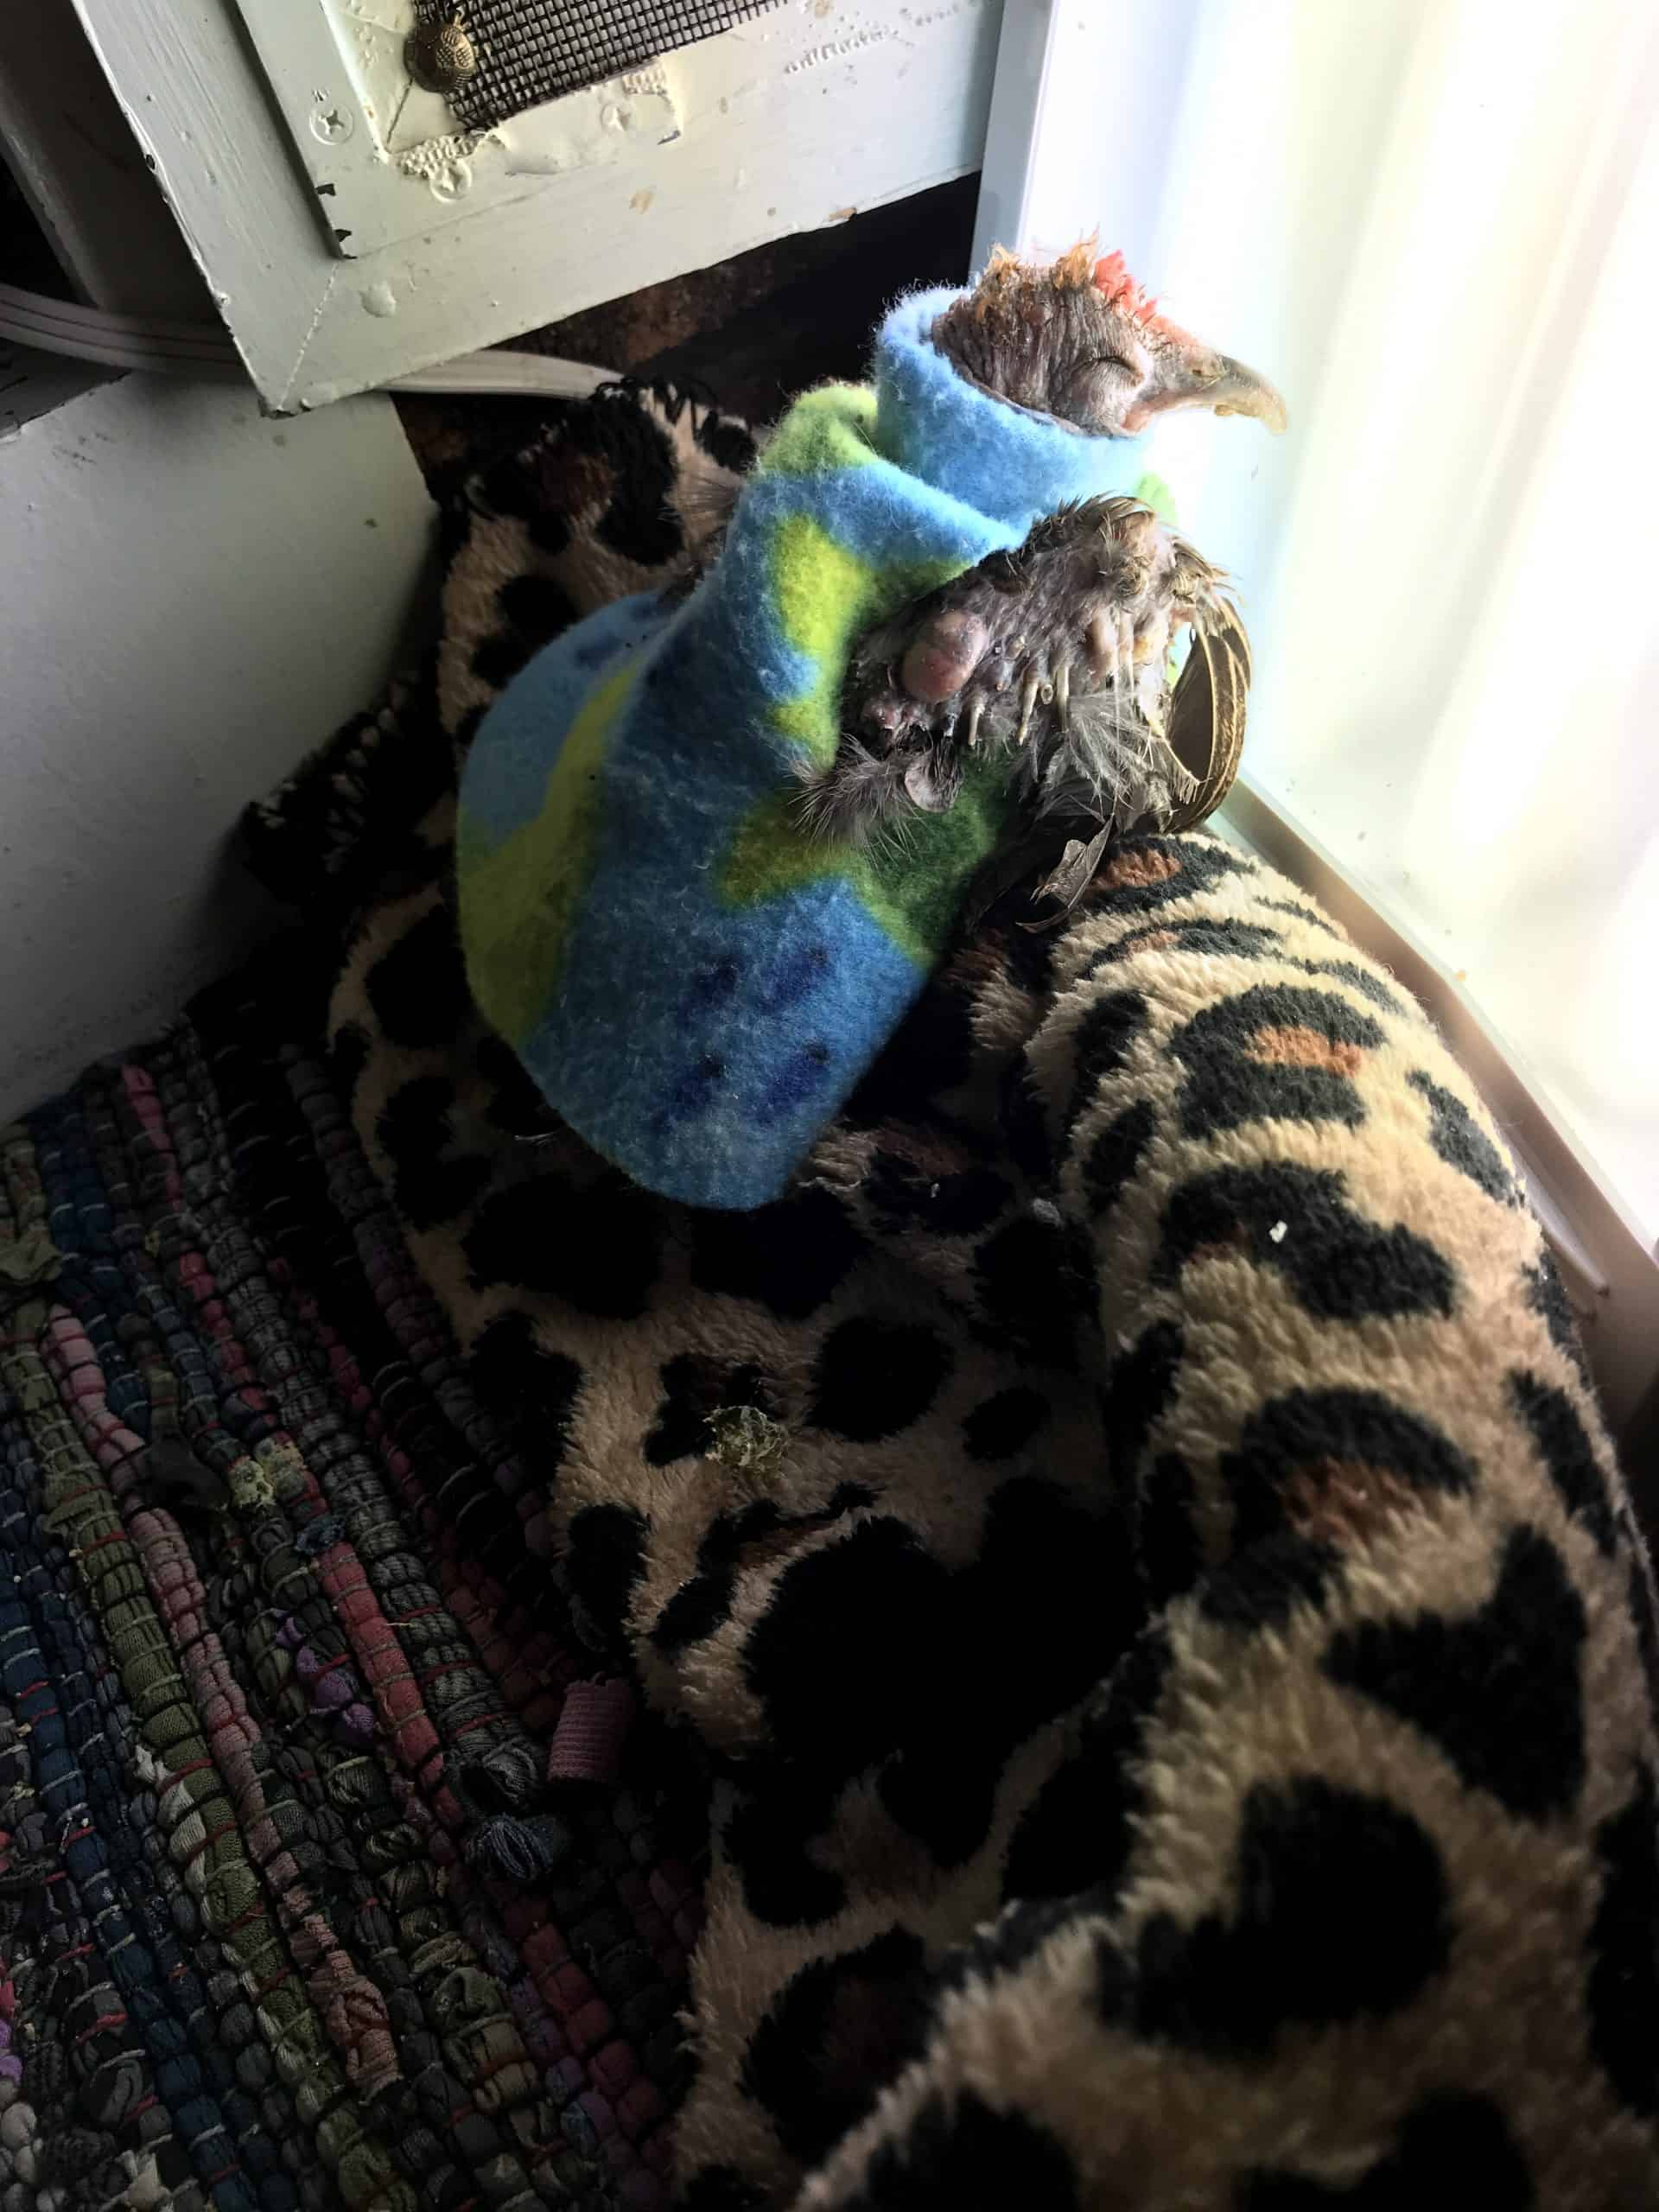 A small, almost featherless hen sits with her eyes closed on a rolled up plush blanket, facing a happy light. She wears a soft frock that has a turtleneck design.